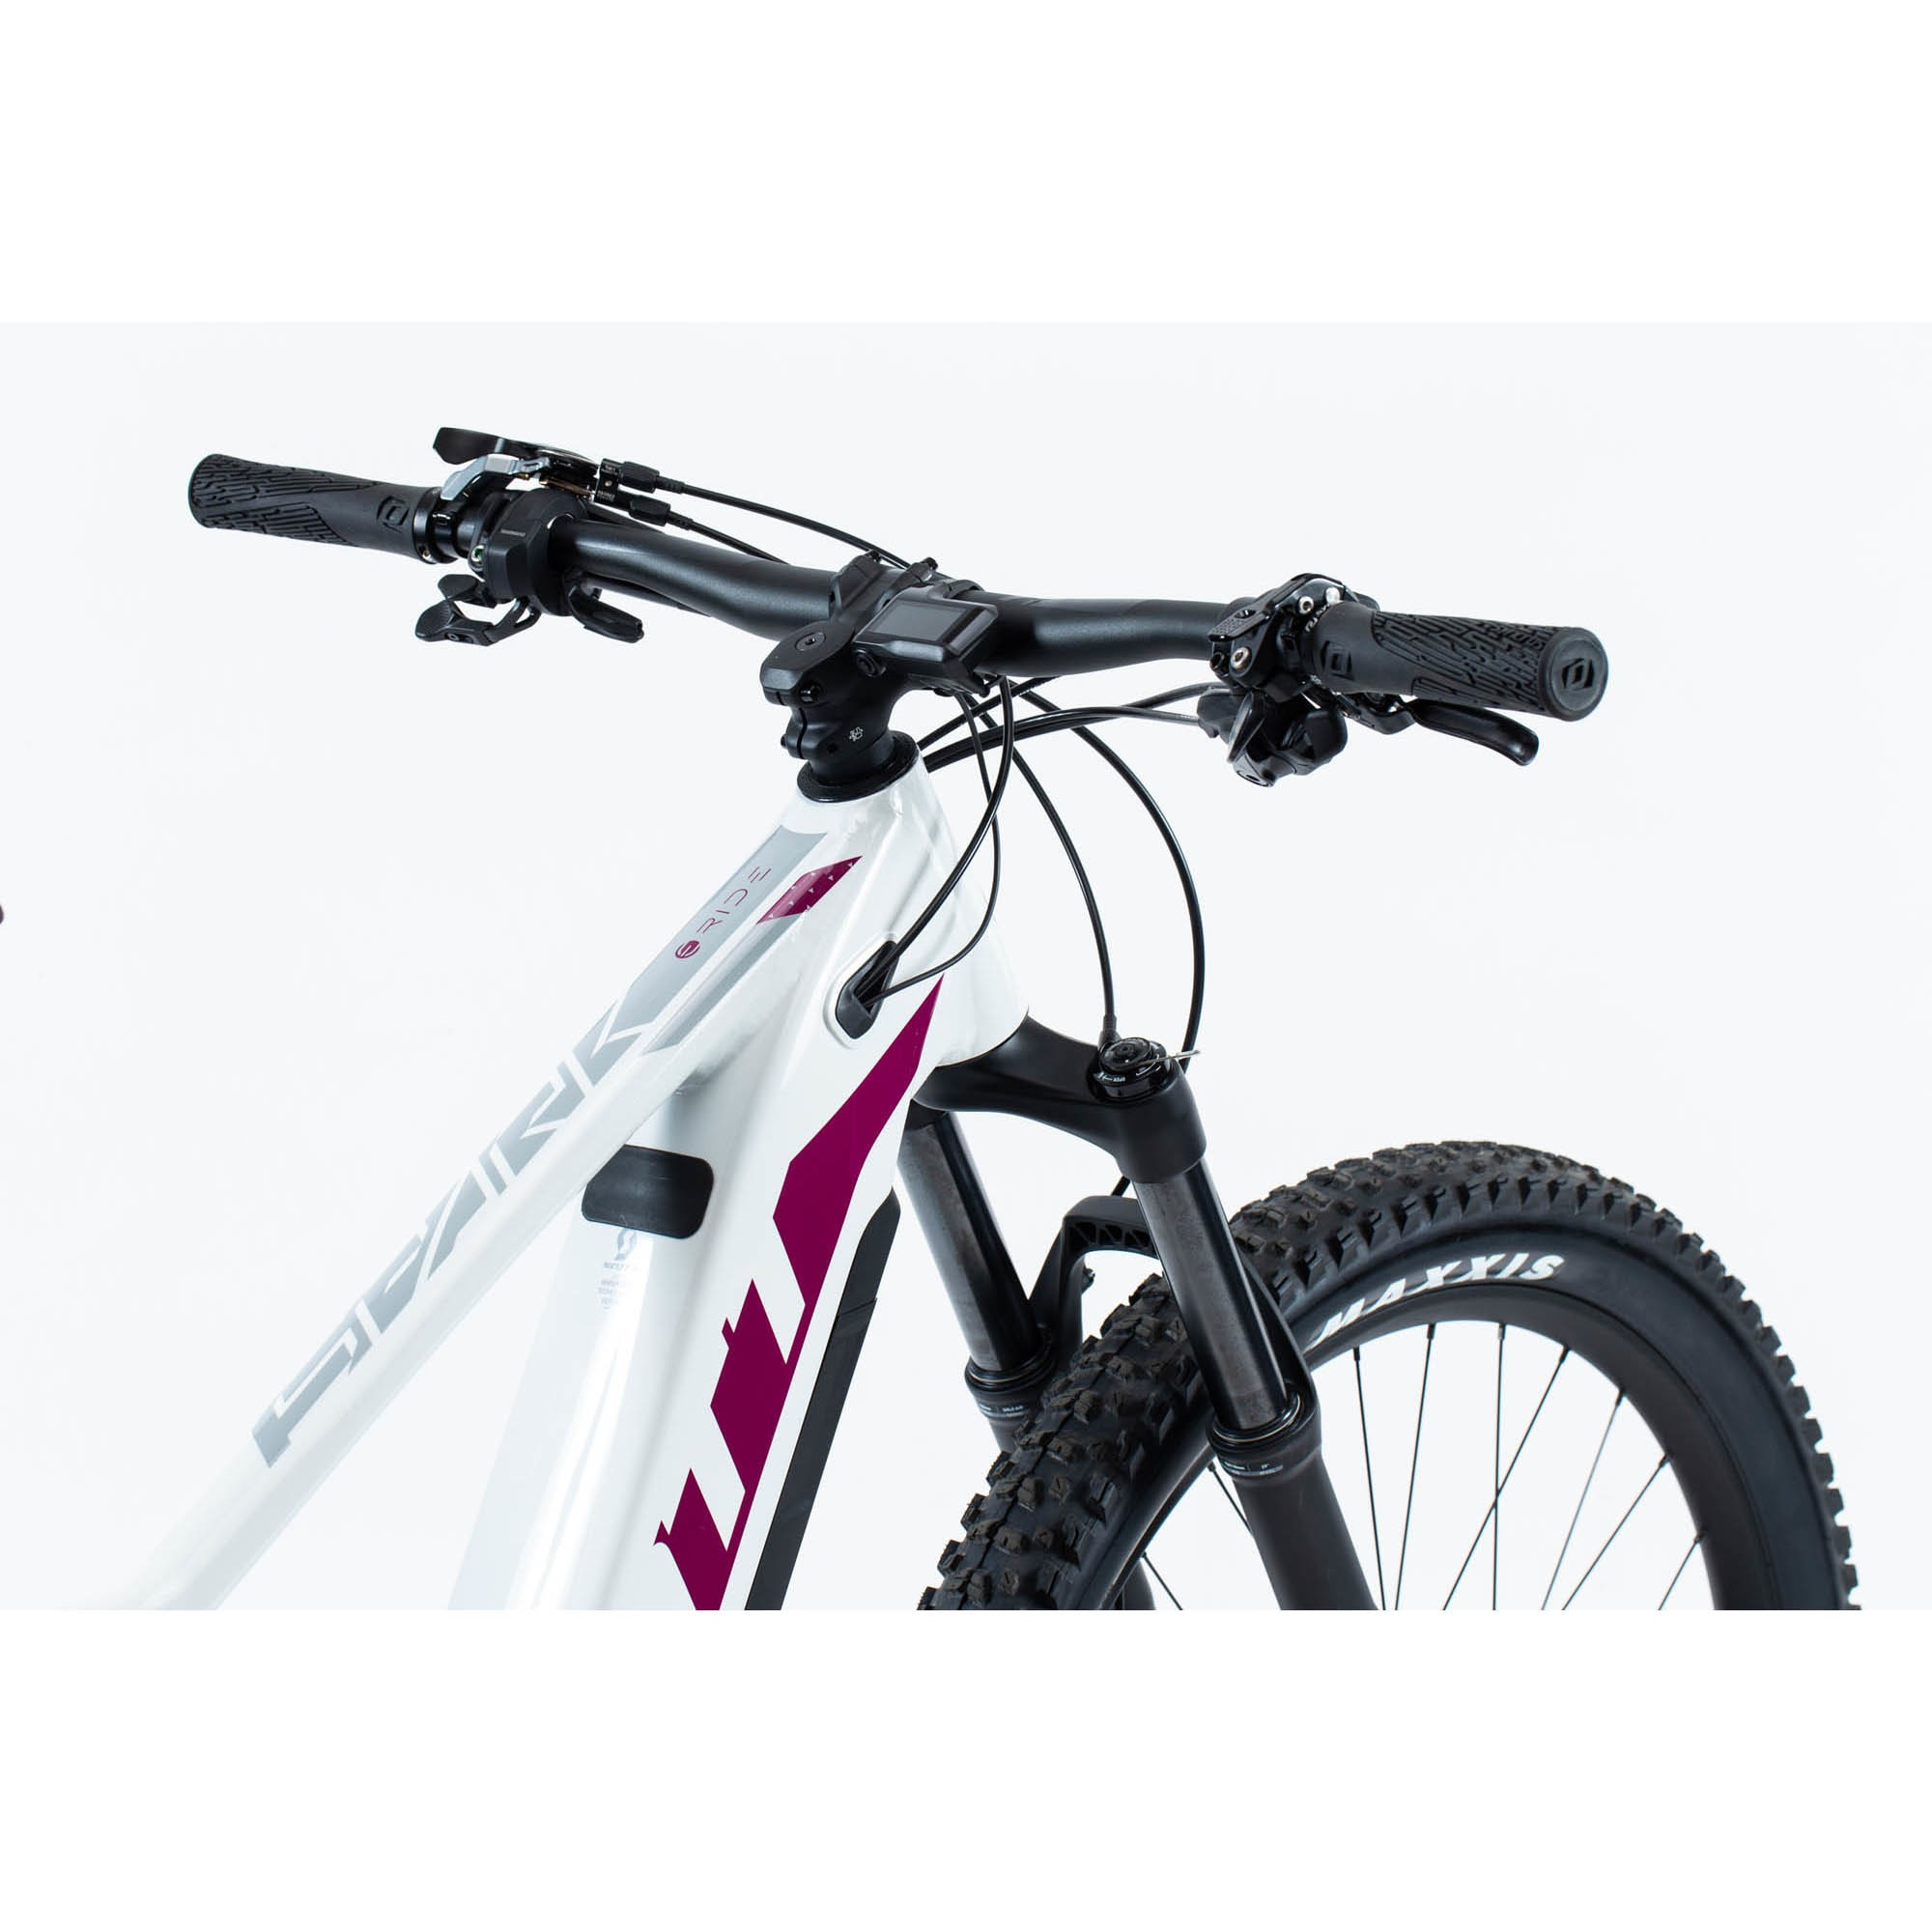 SCOTT Contessa Spark eRide 710 Bike